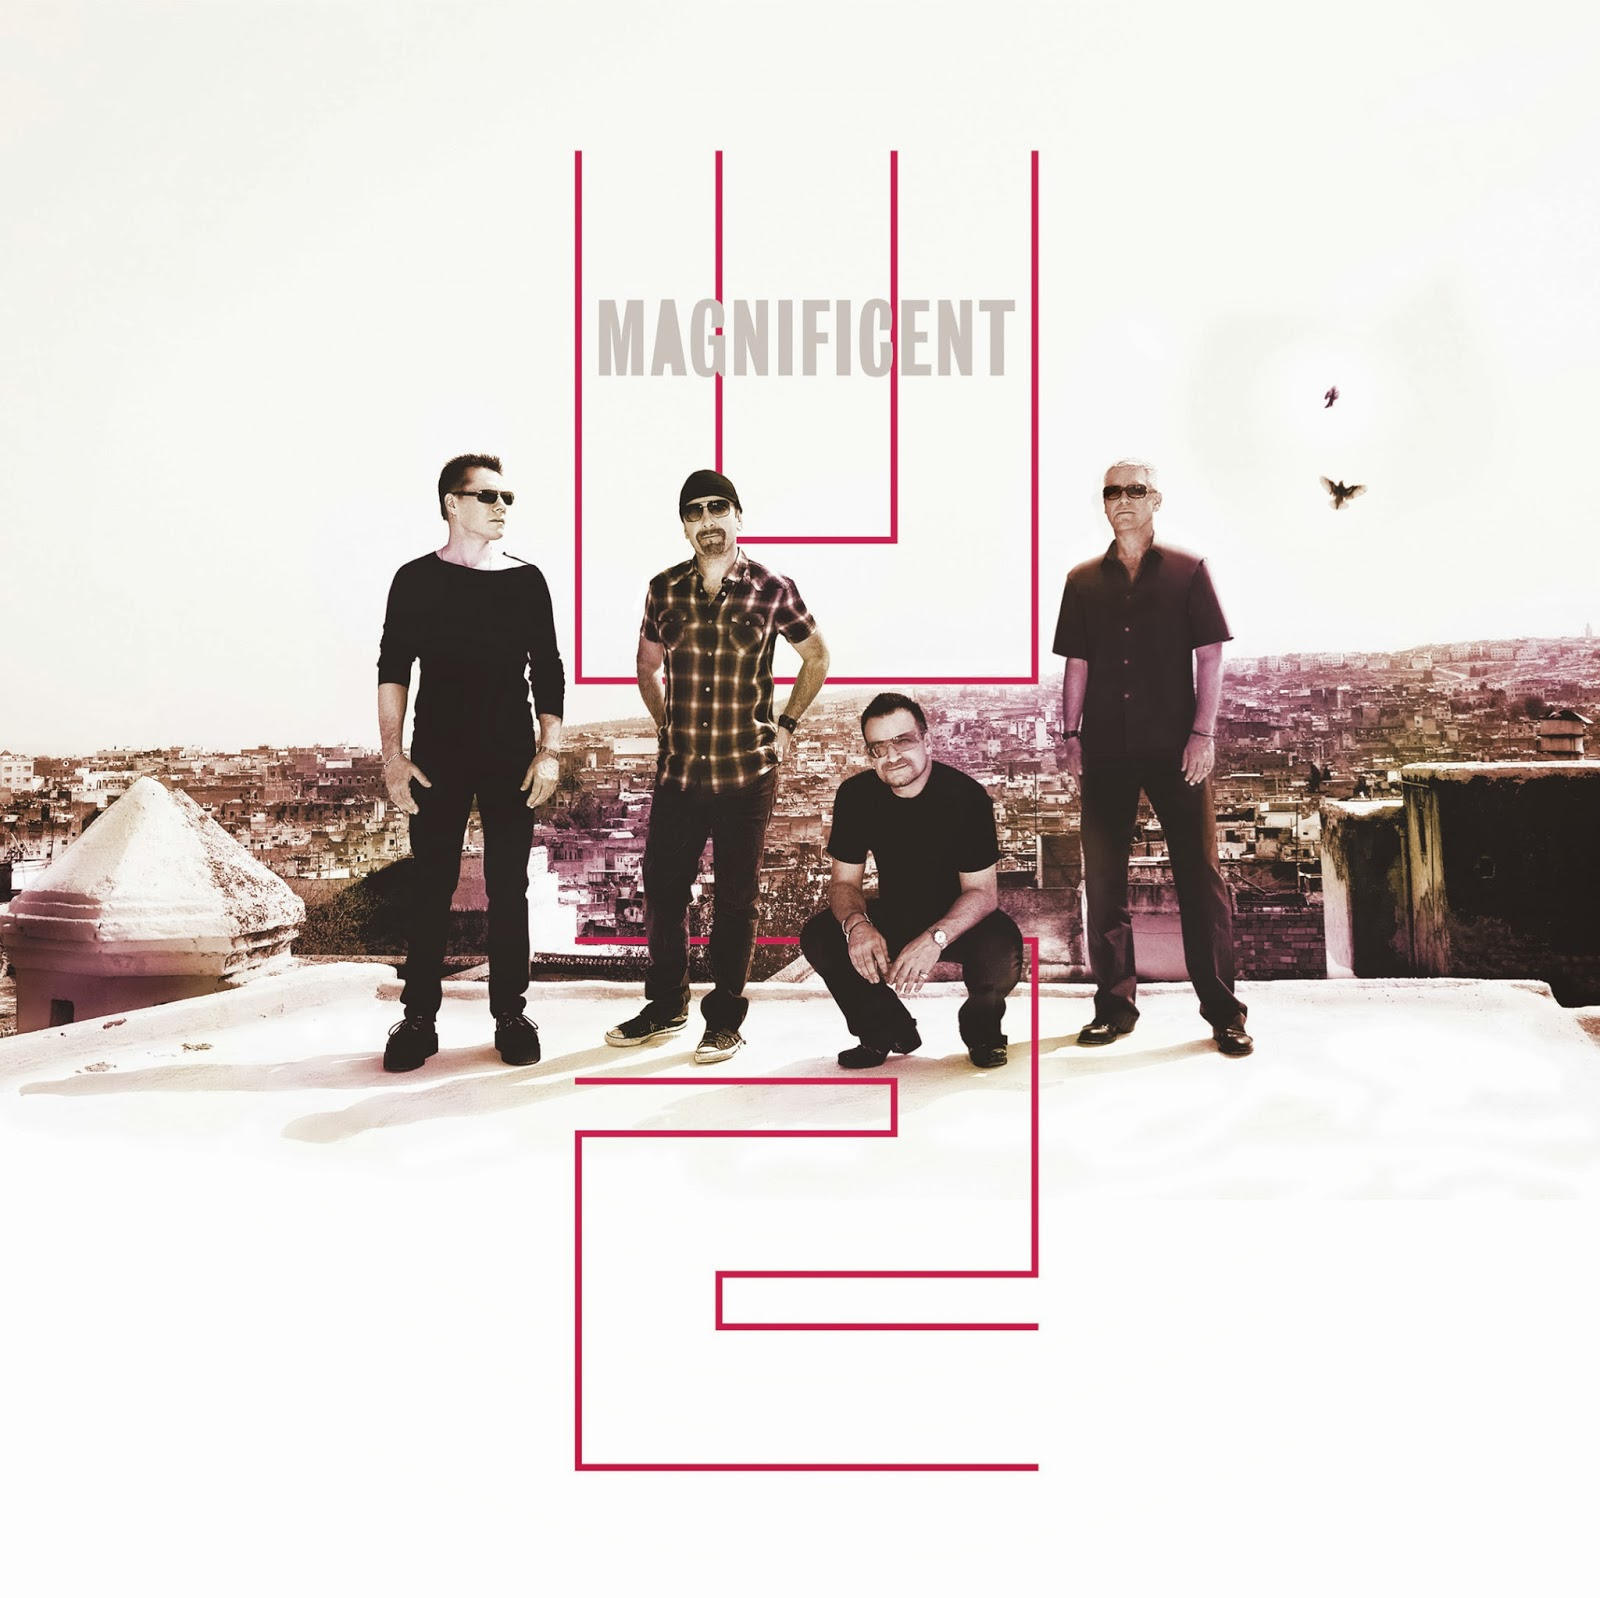 """Magnificent"" song lyrics by U2"